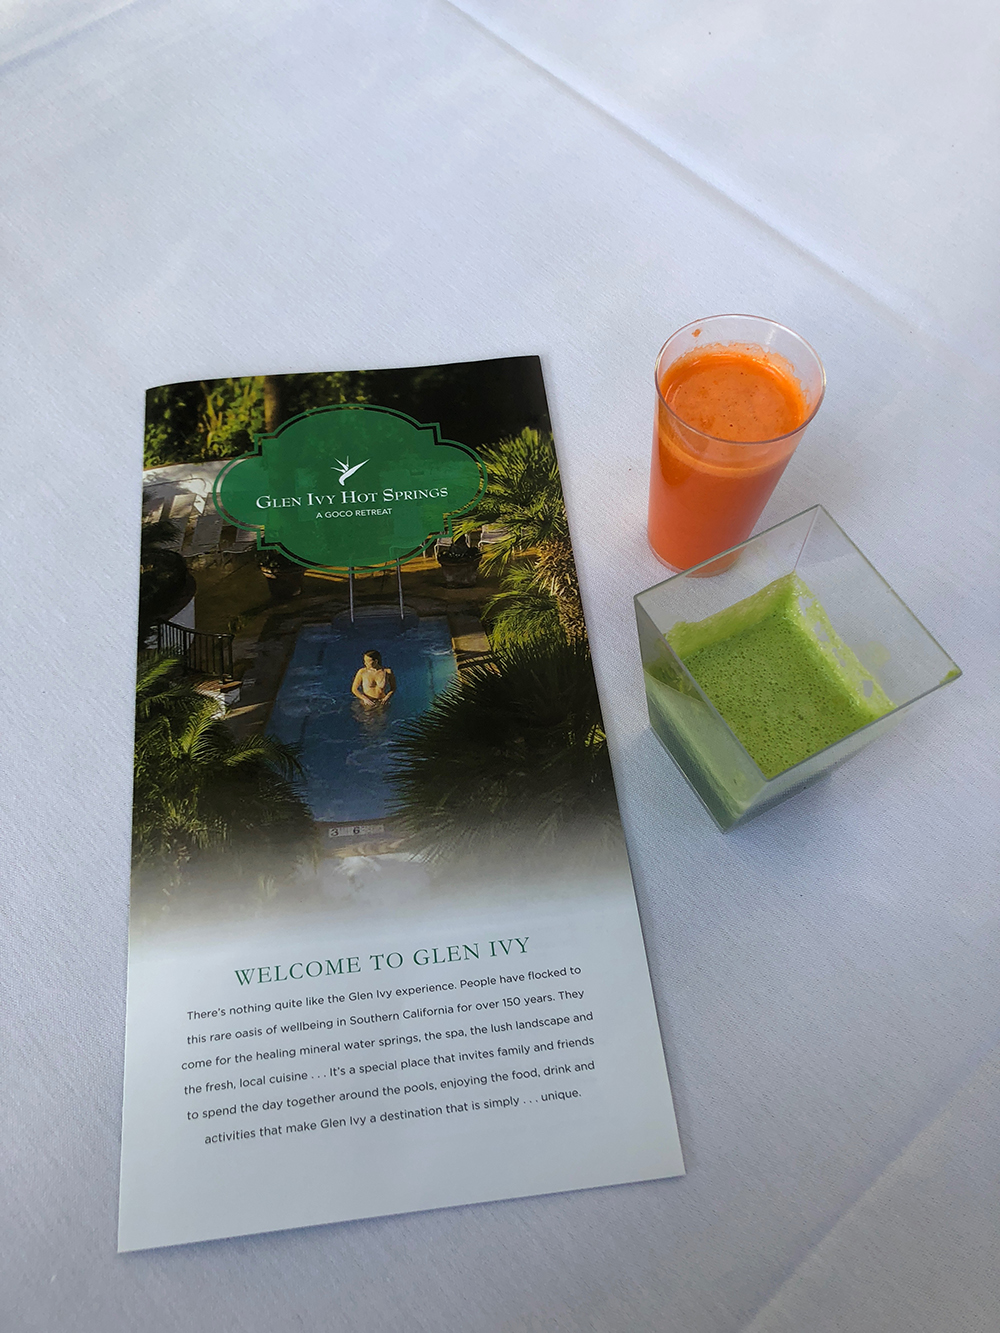 We enjoyed fresh-squeezed juices from Glen Ivy's Ivy Kitchen. [Image courtesy of The Spa Insider]